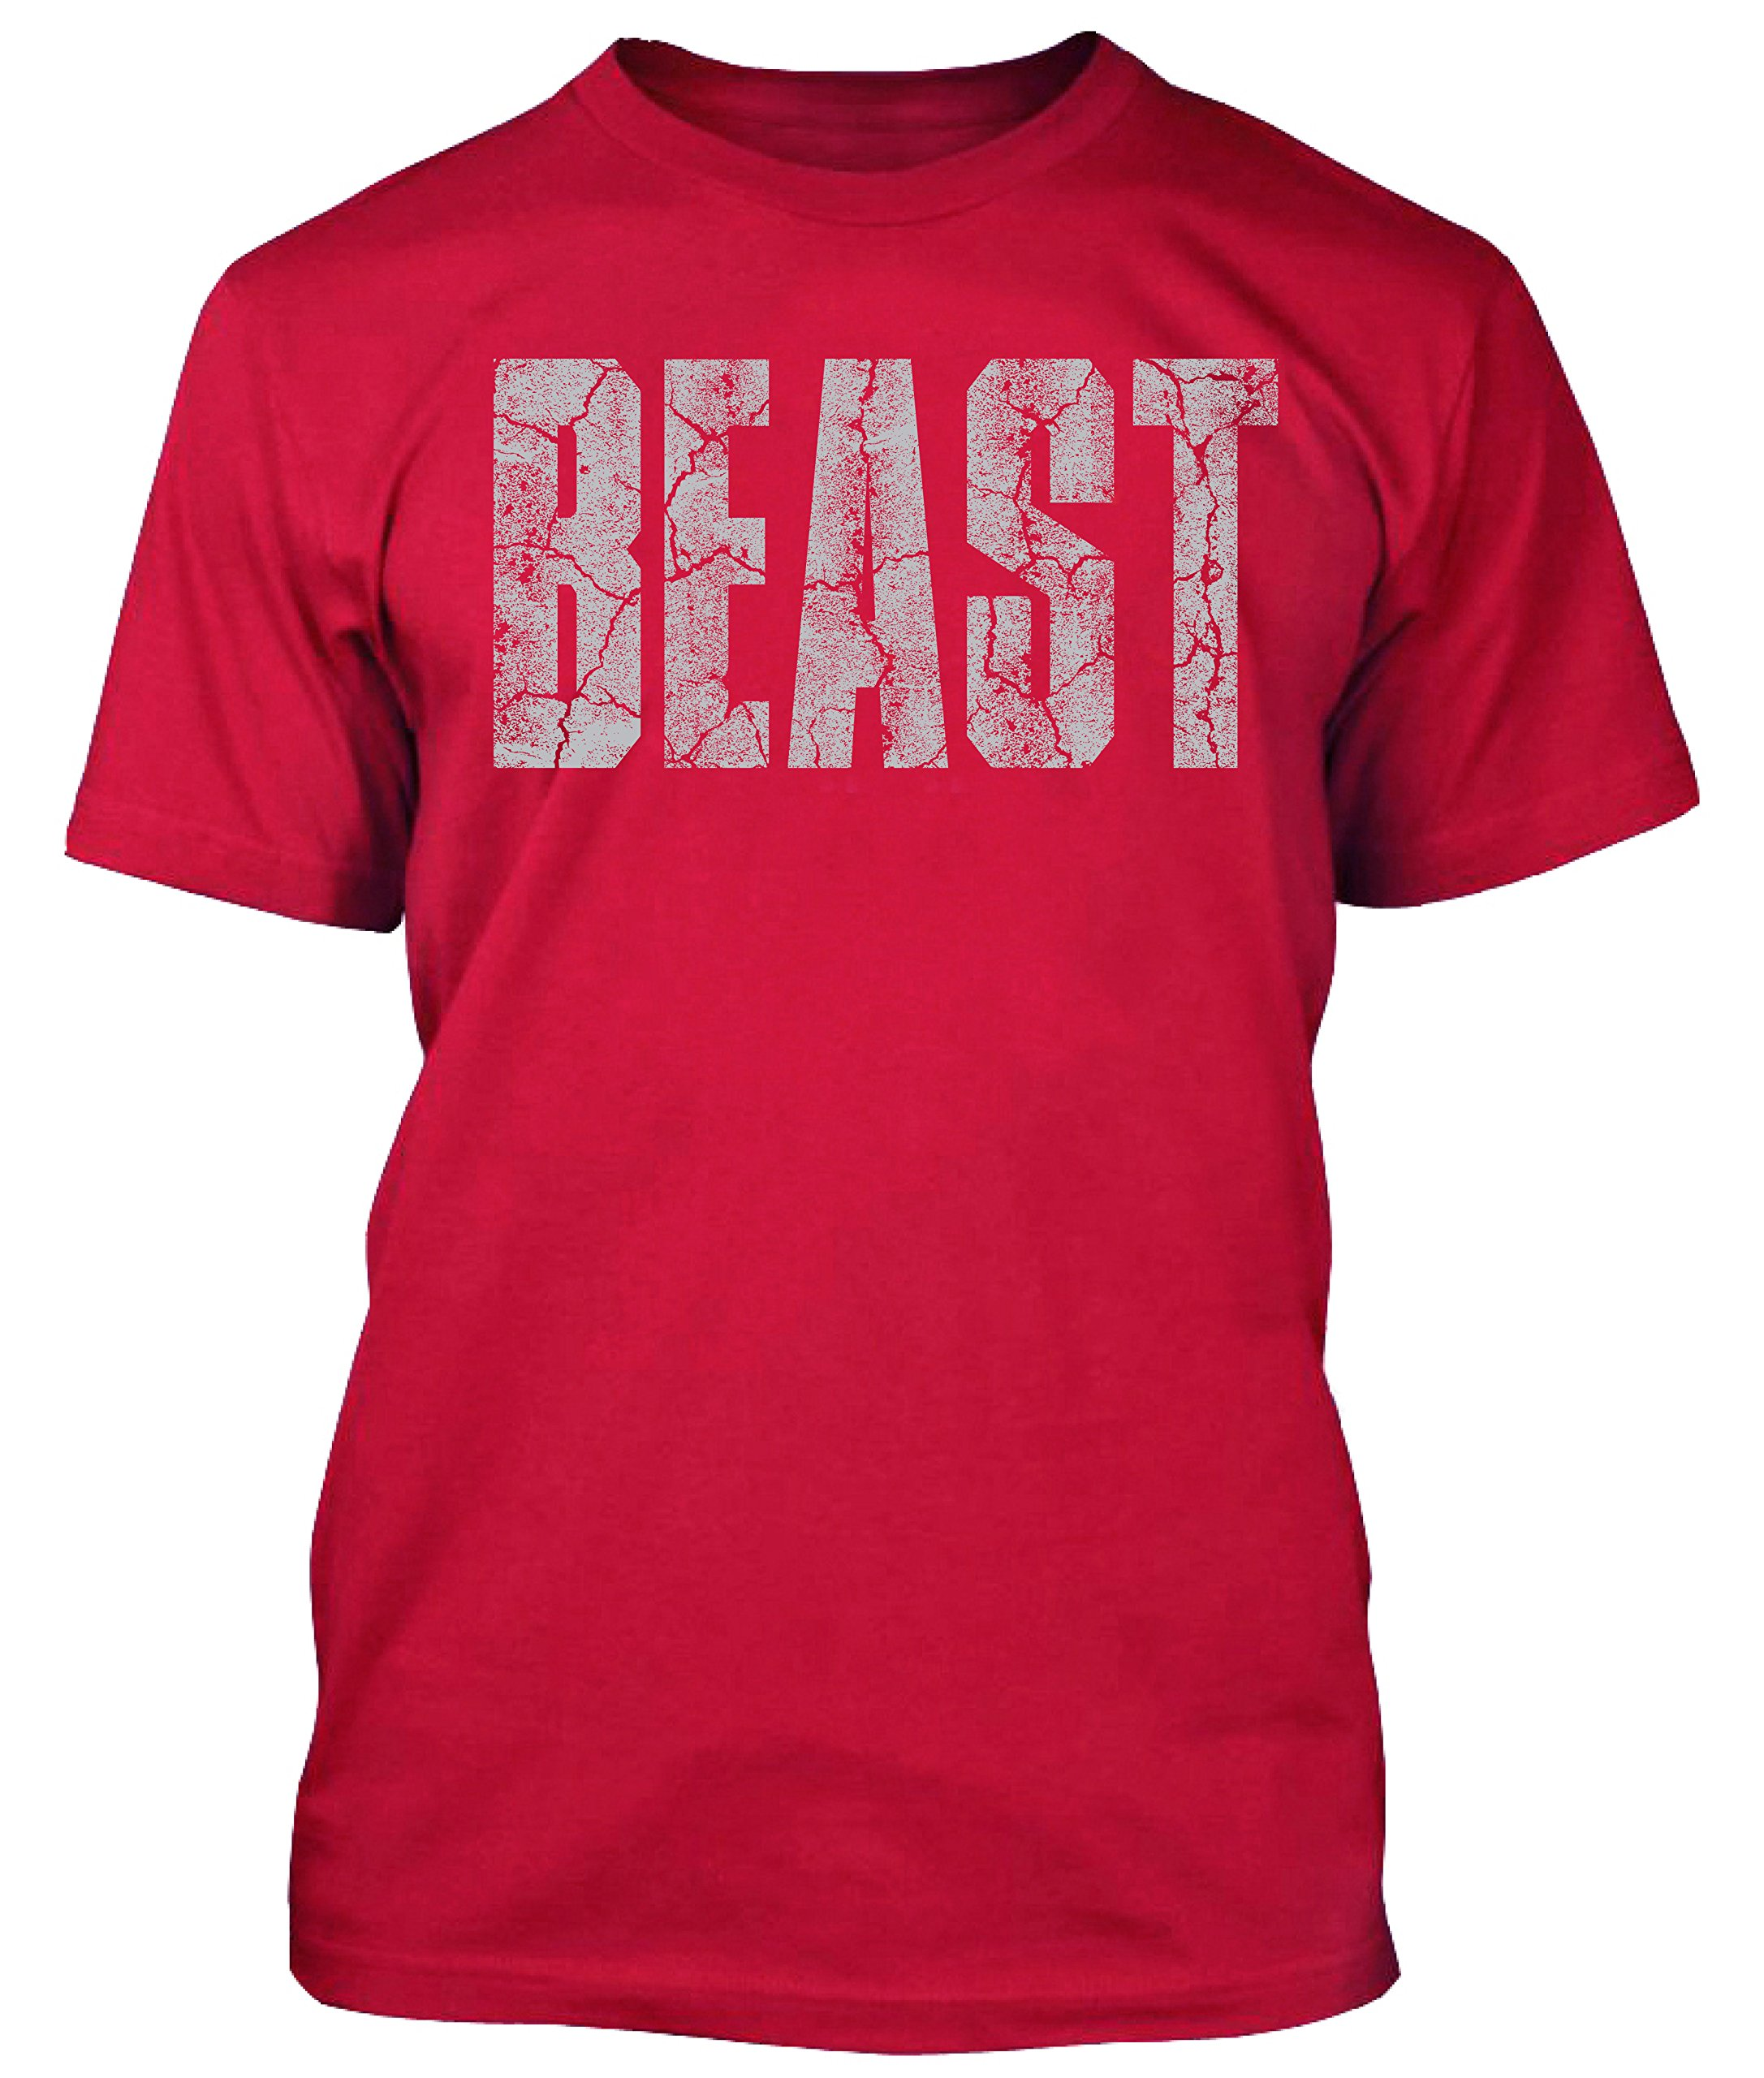 New Generation Apparel Beast Shirt Gym Workout Wear Weightlifting (L, Red)